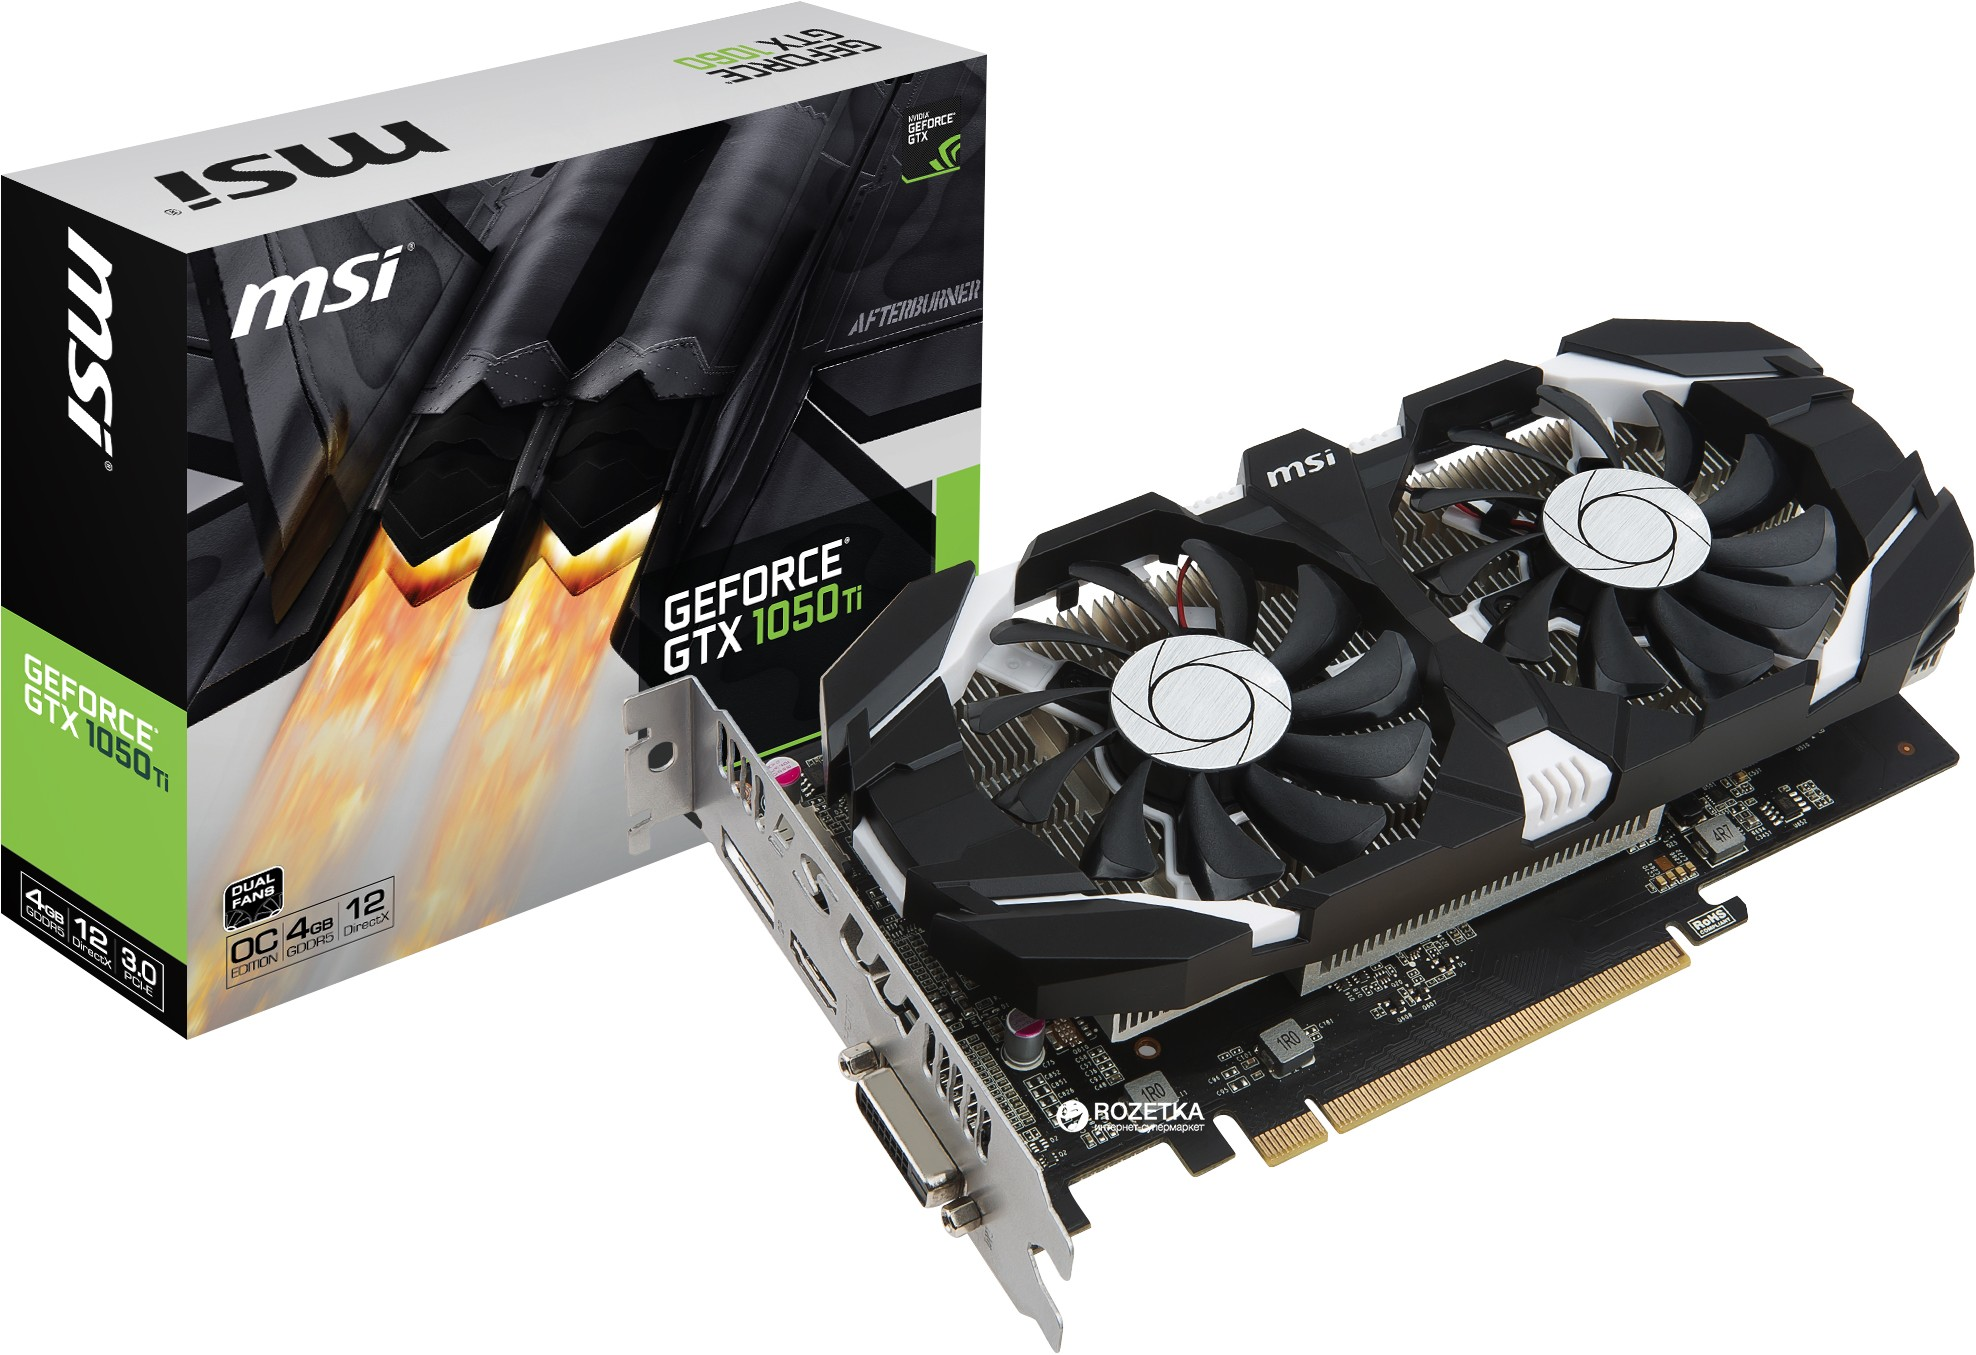 Биткоин фермы - geforce 1050 ti